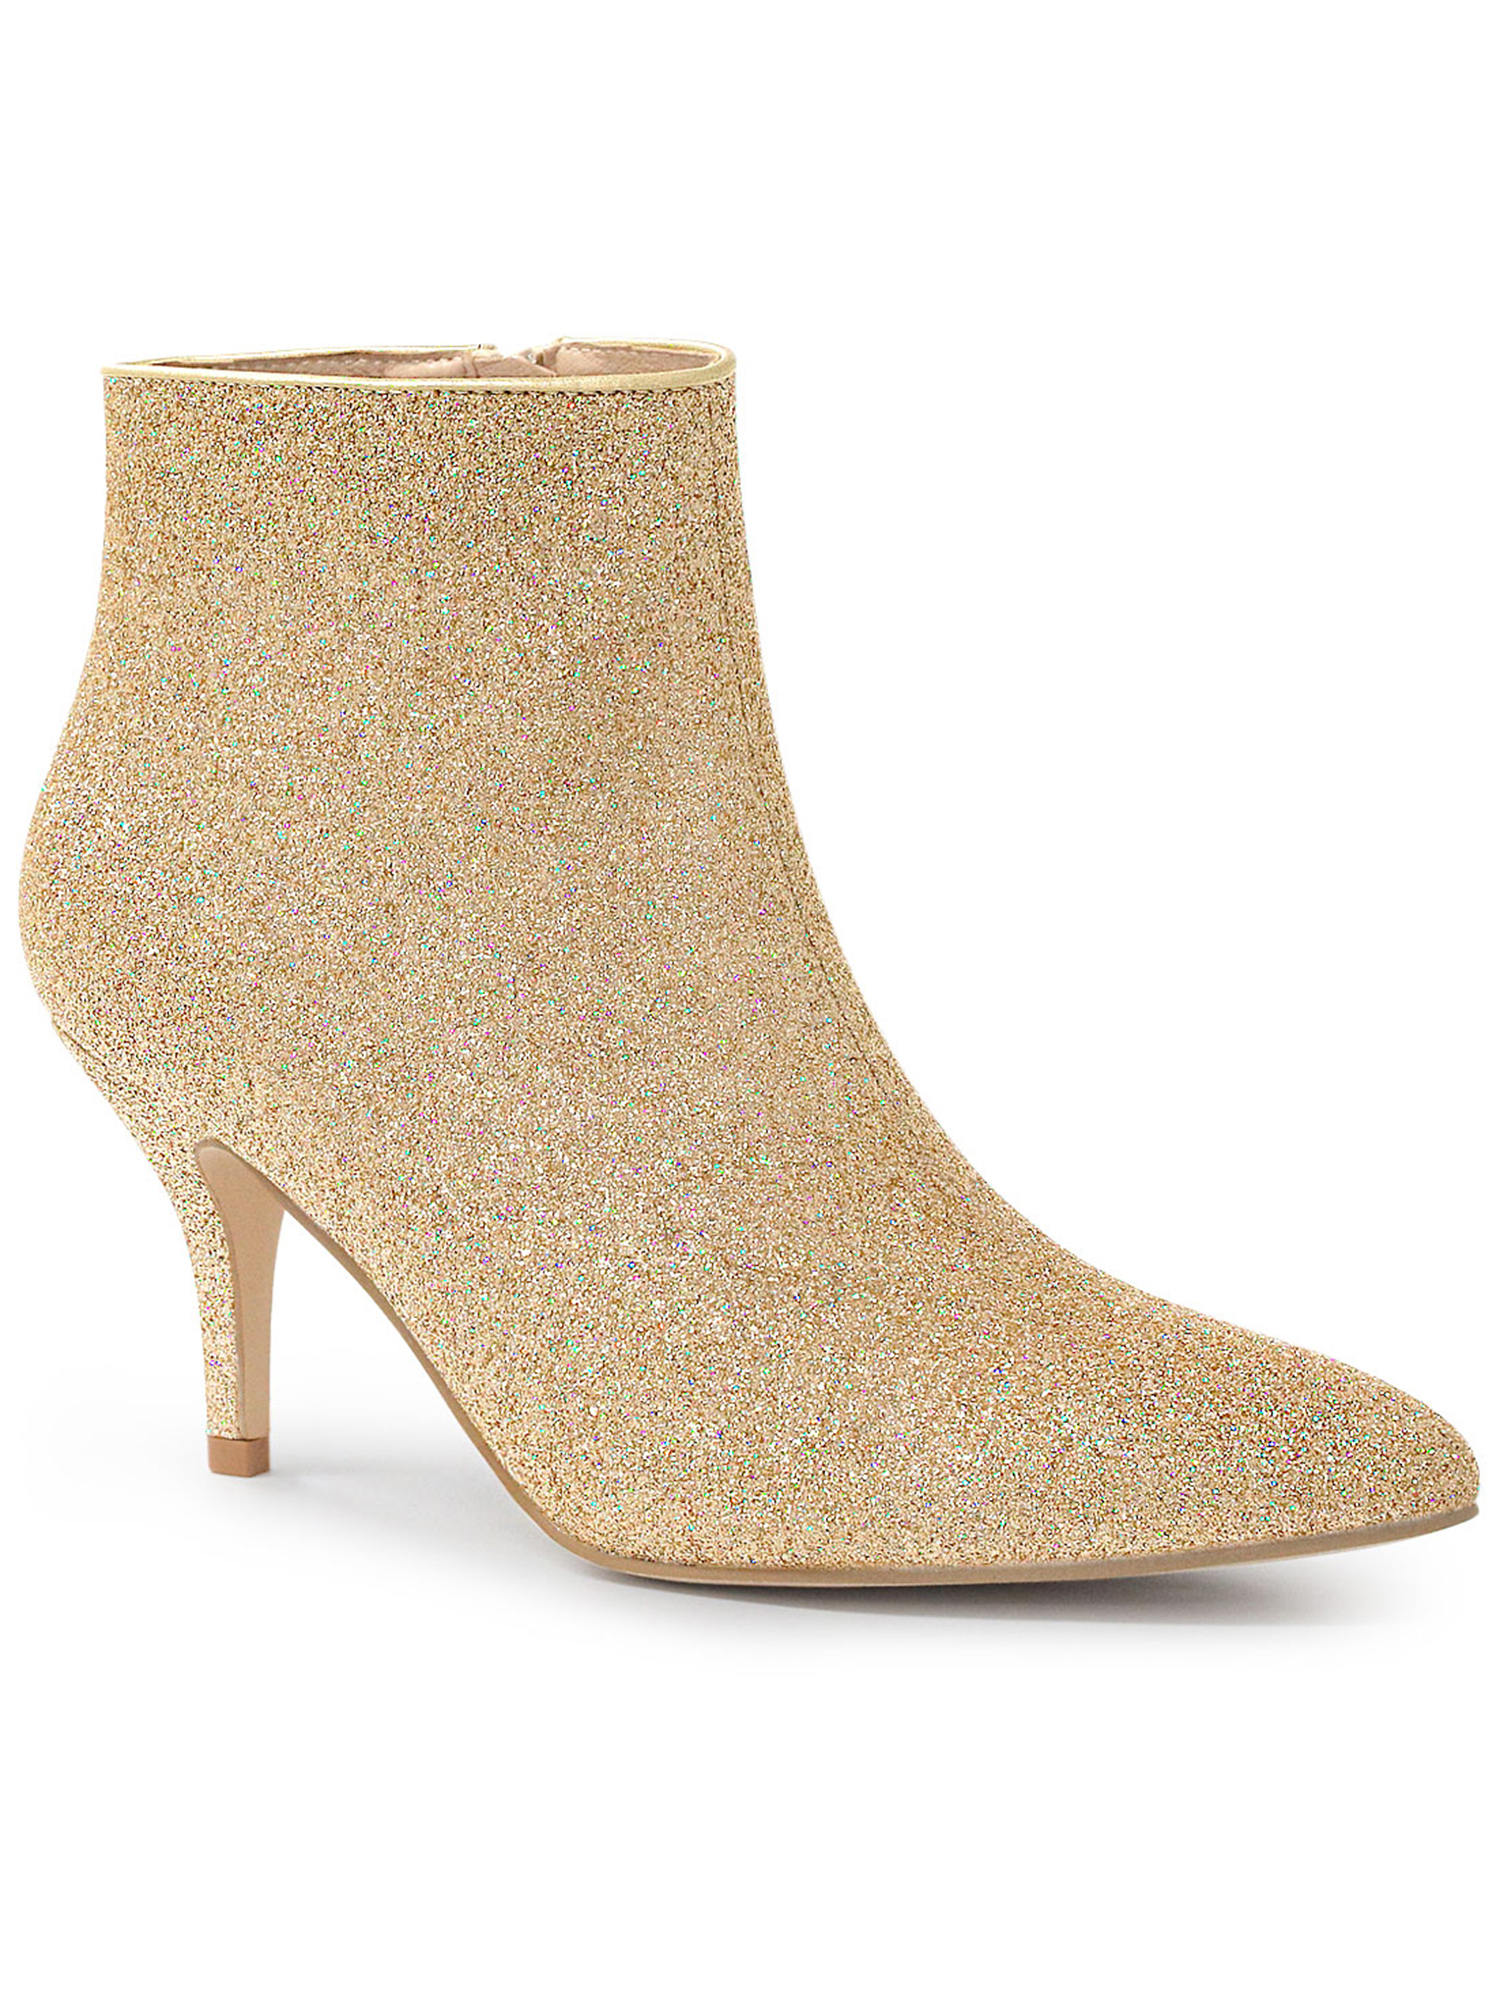 Details about  /Women Stilettos High Heel Summer Ankle Boots Glitter Zip Pointed Toe Party Shoes